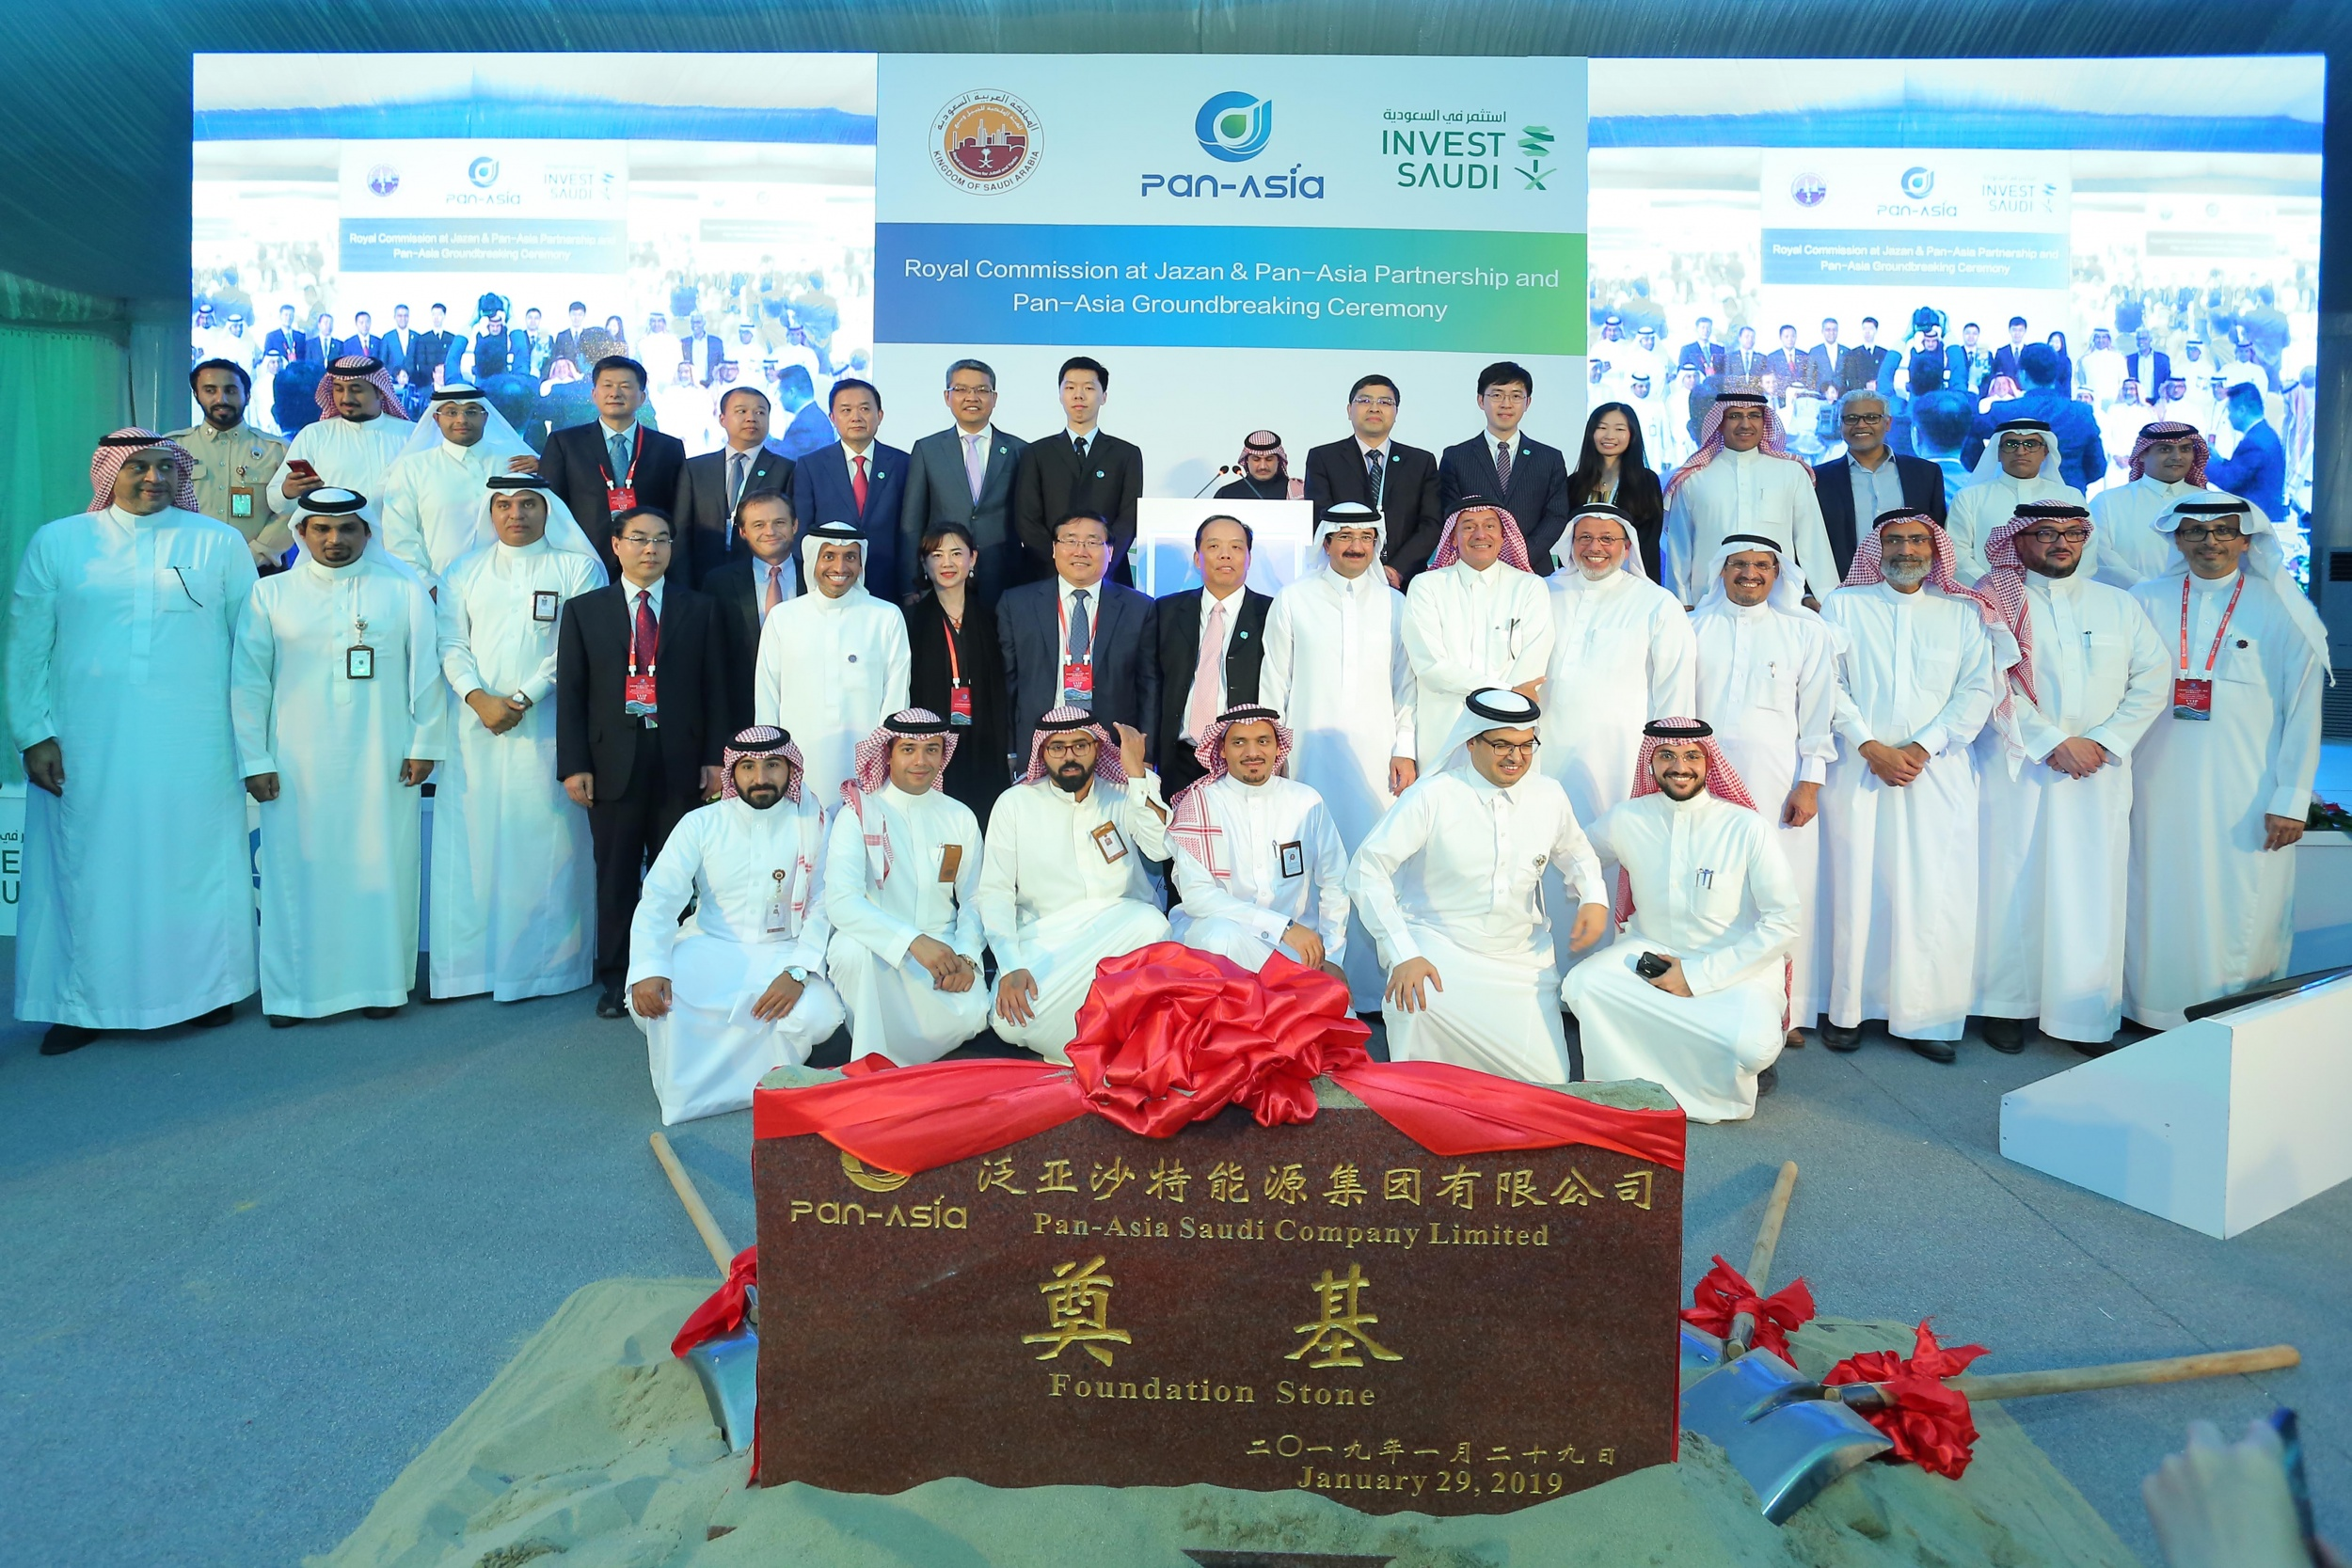 the groundbreaking ceremony for the project was successfully held